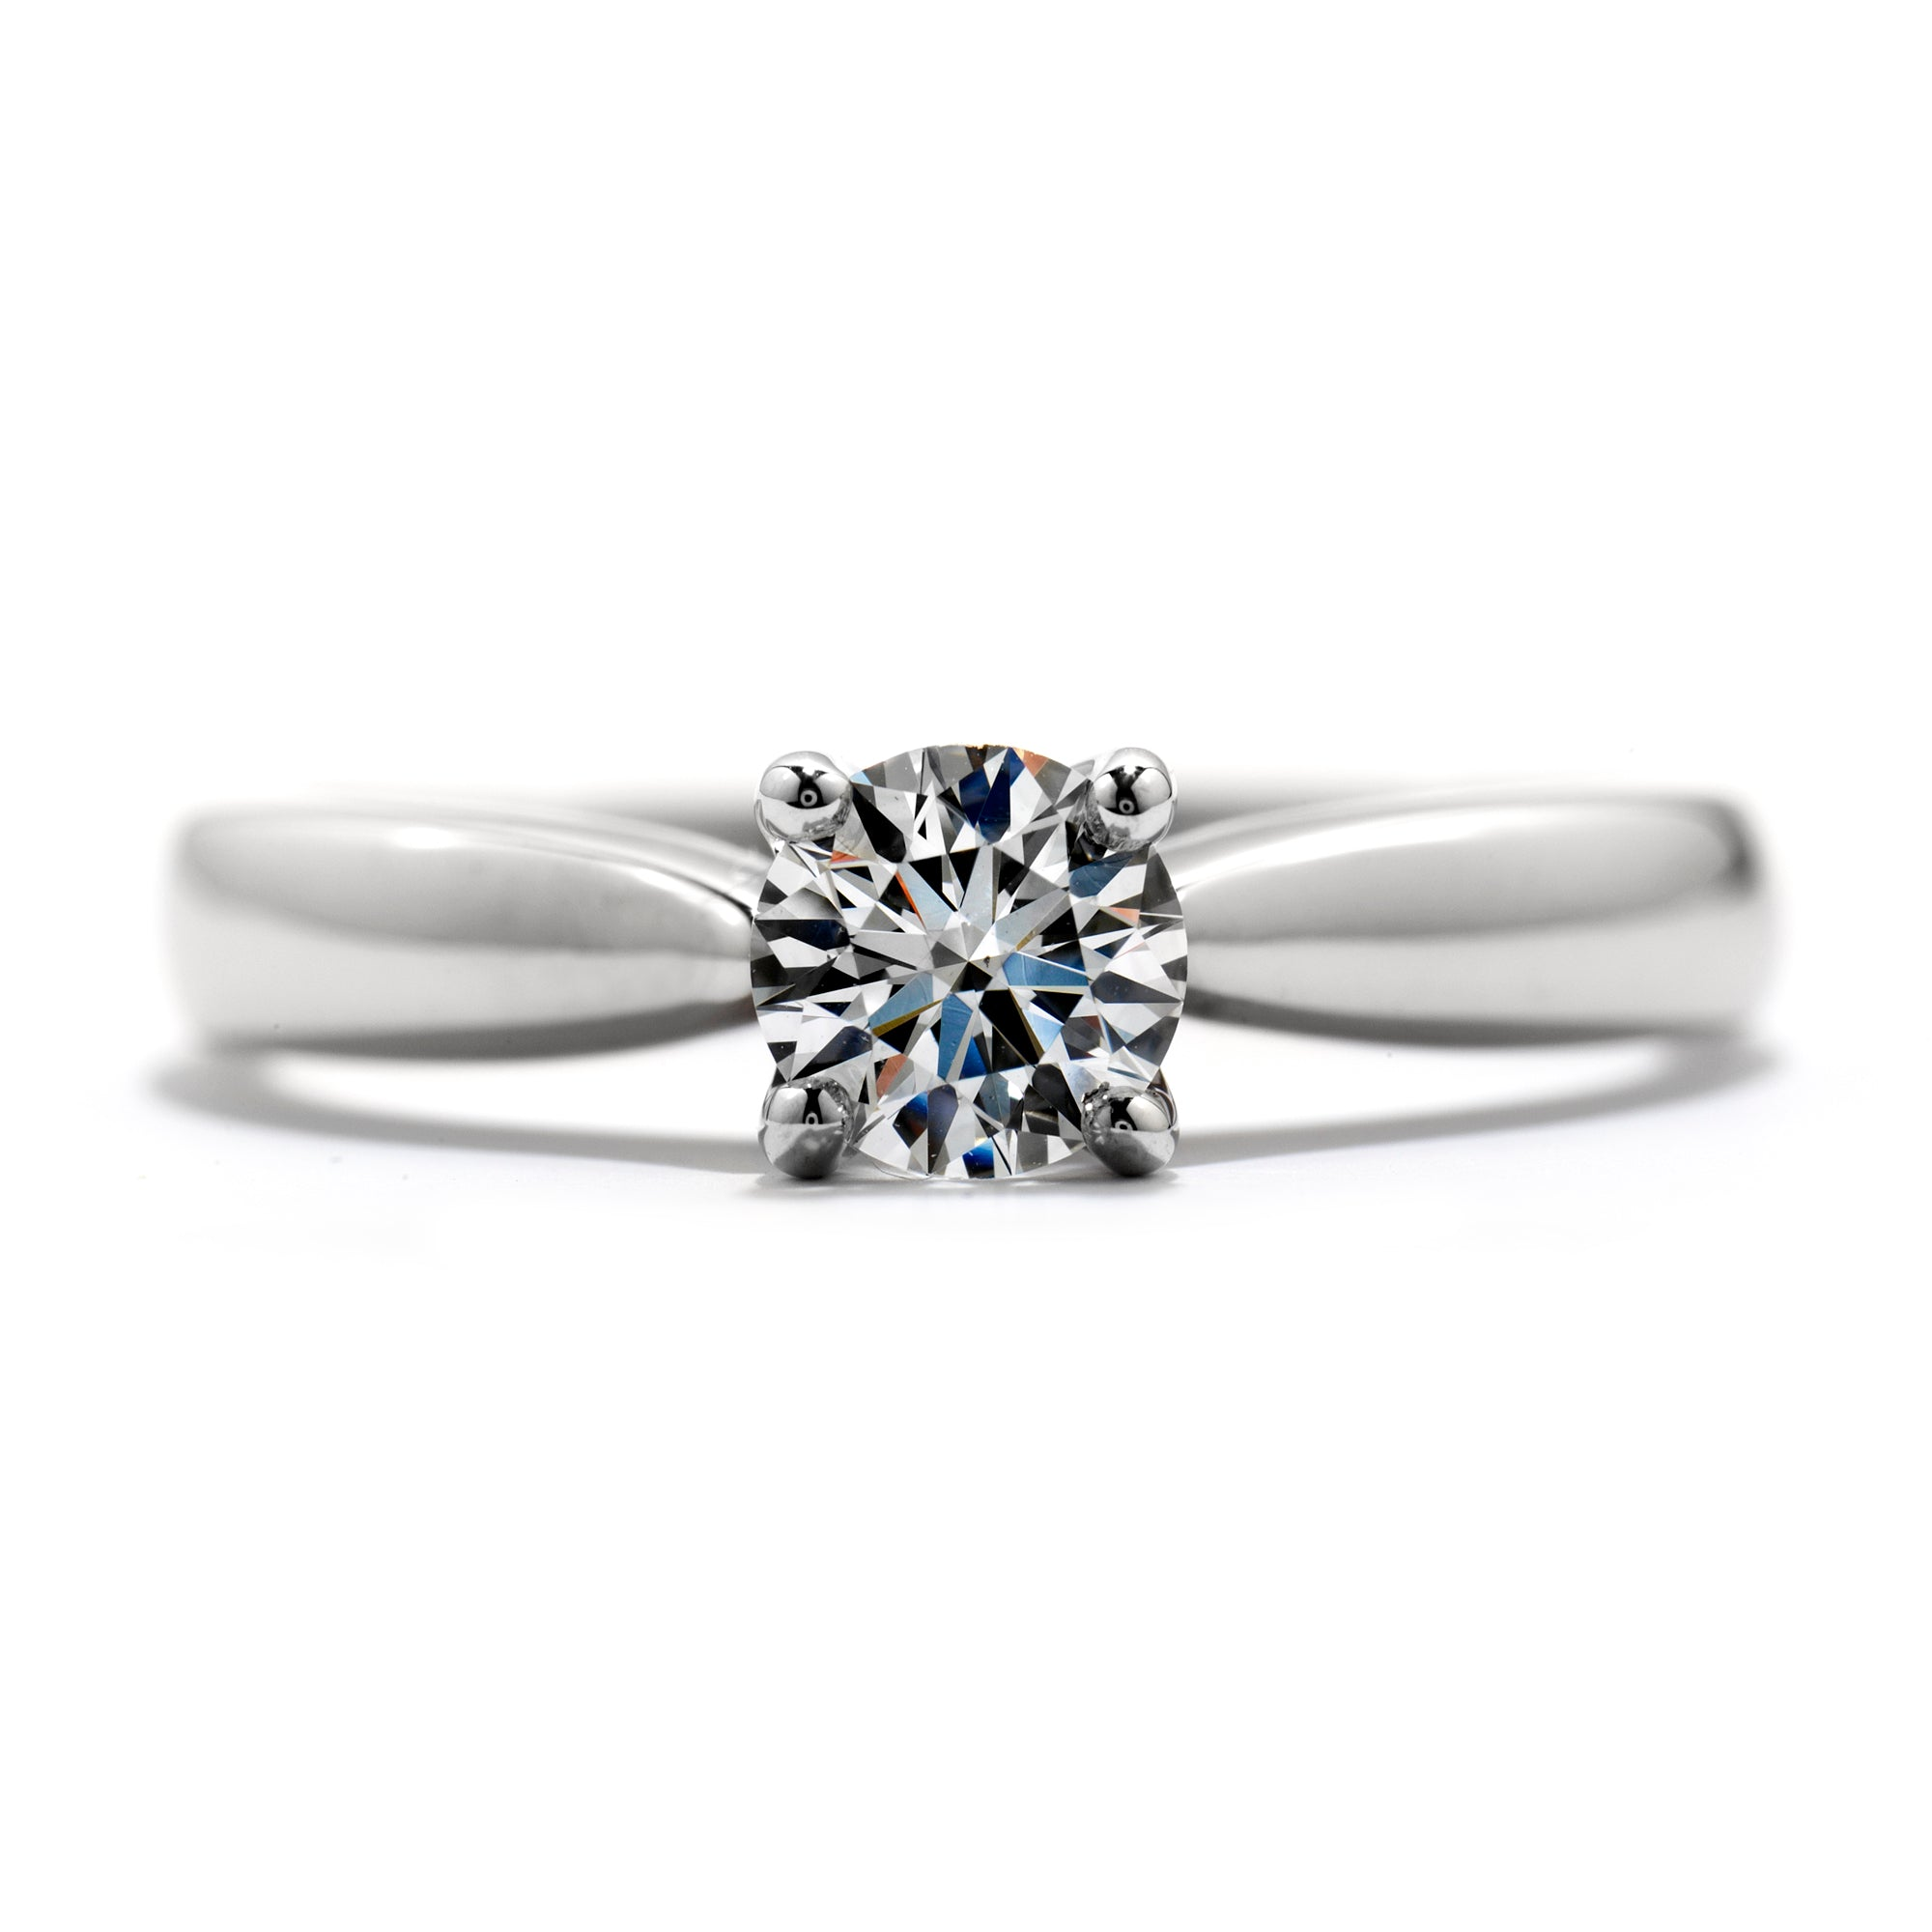 Hearts Fire Serenity Diamond Solitaire Engagement Ring – A&J Inc